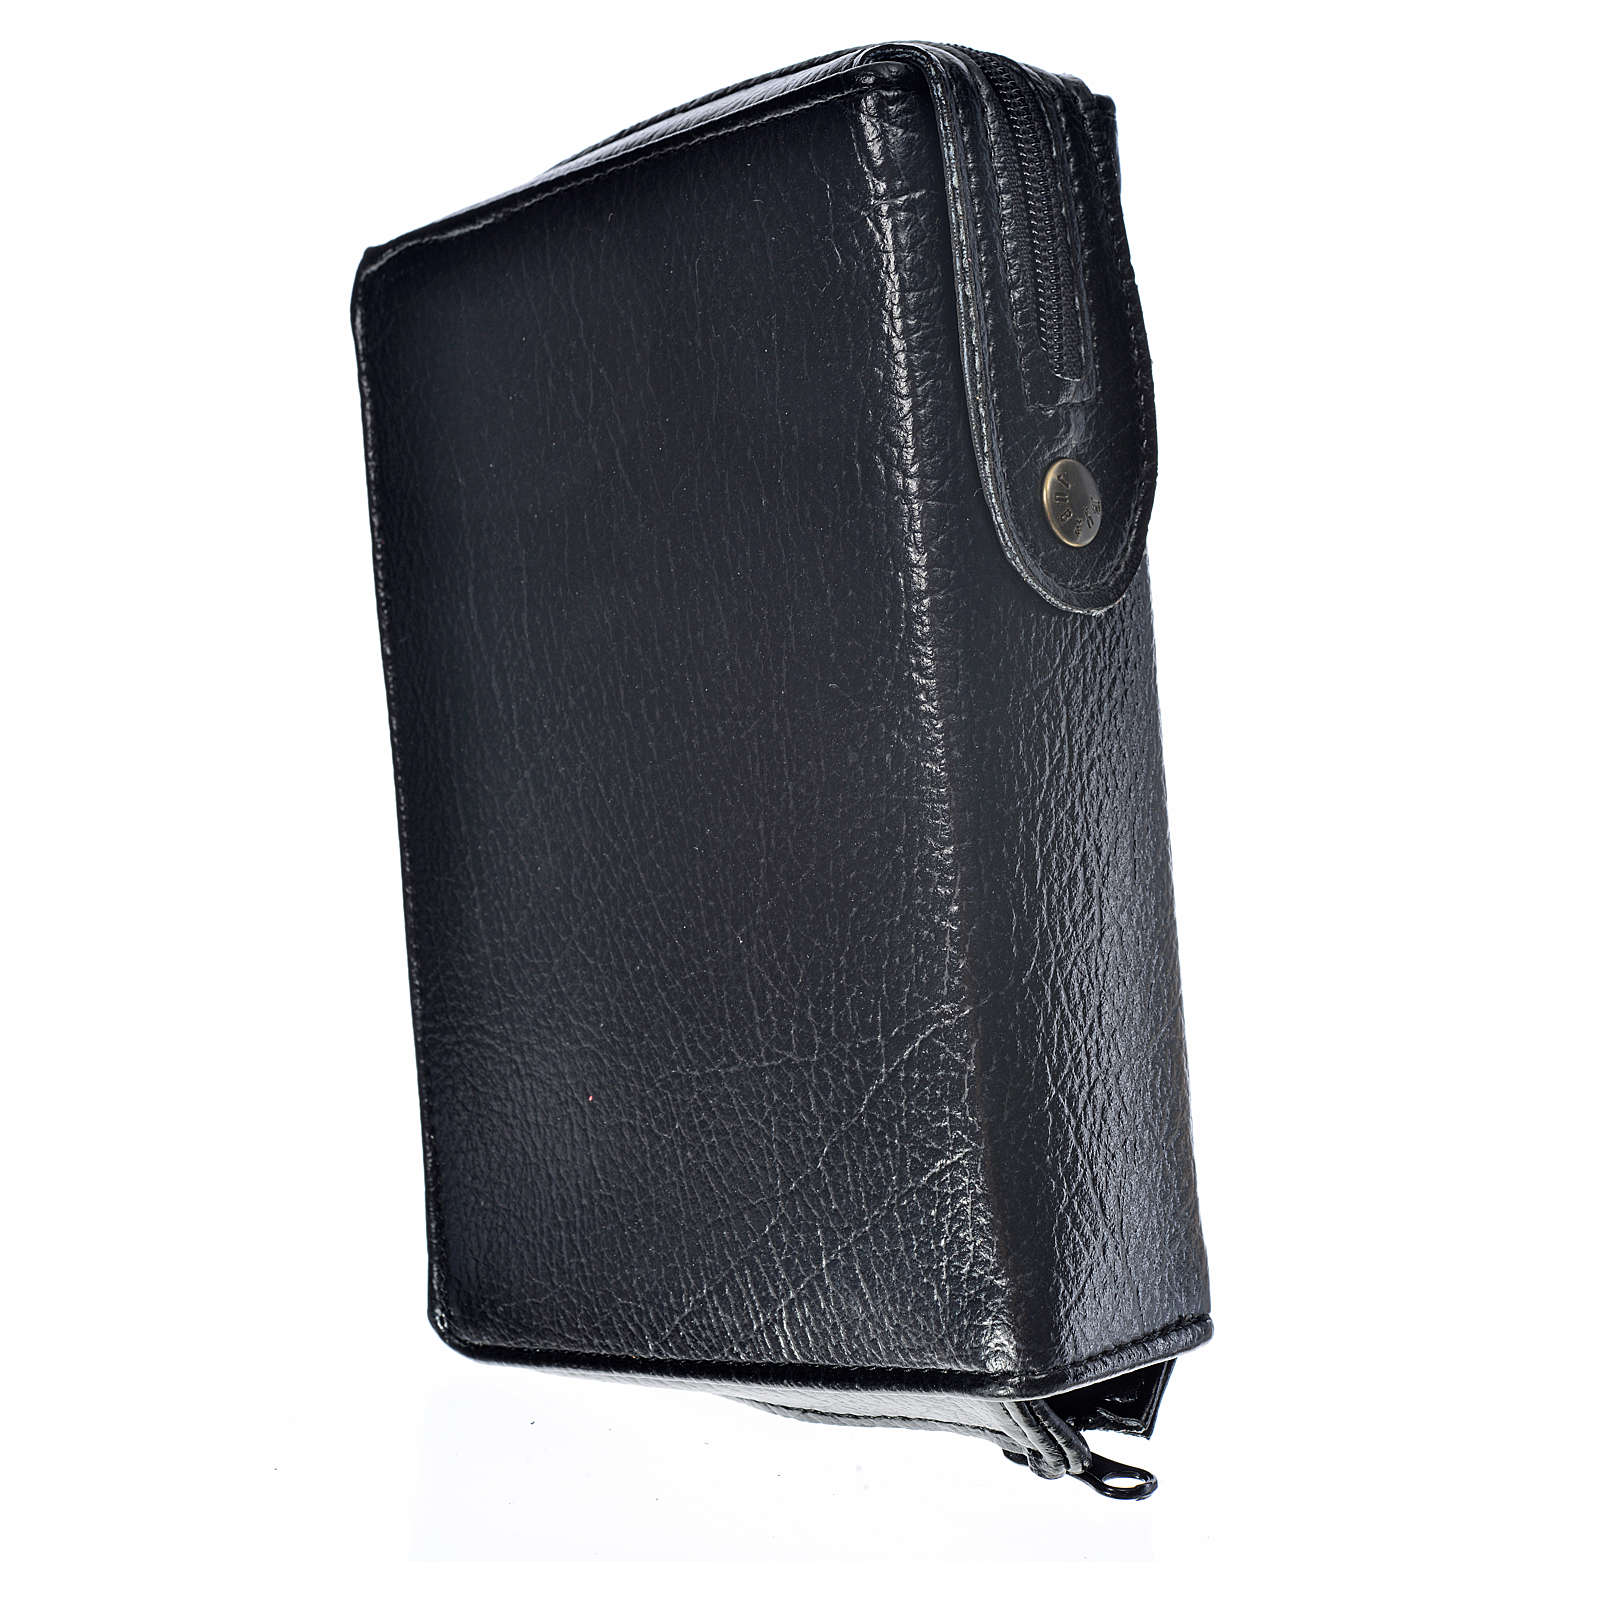 Divine office cover black bonded leather Our Lady of Tenderness 4